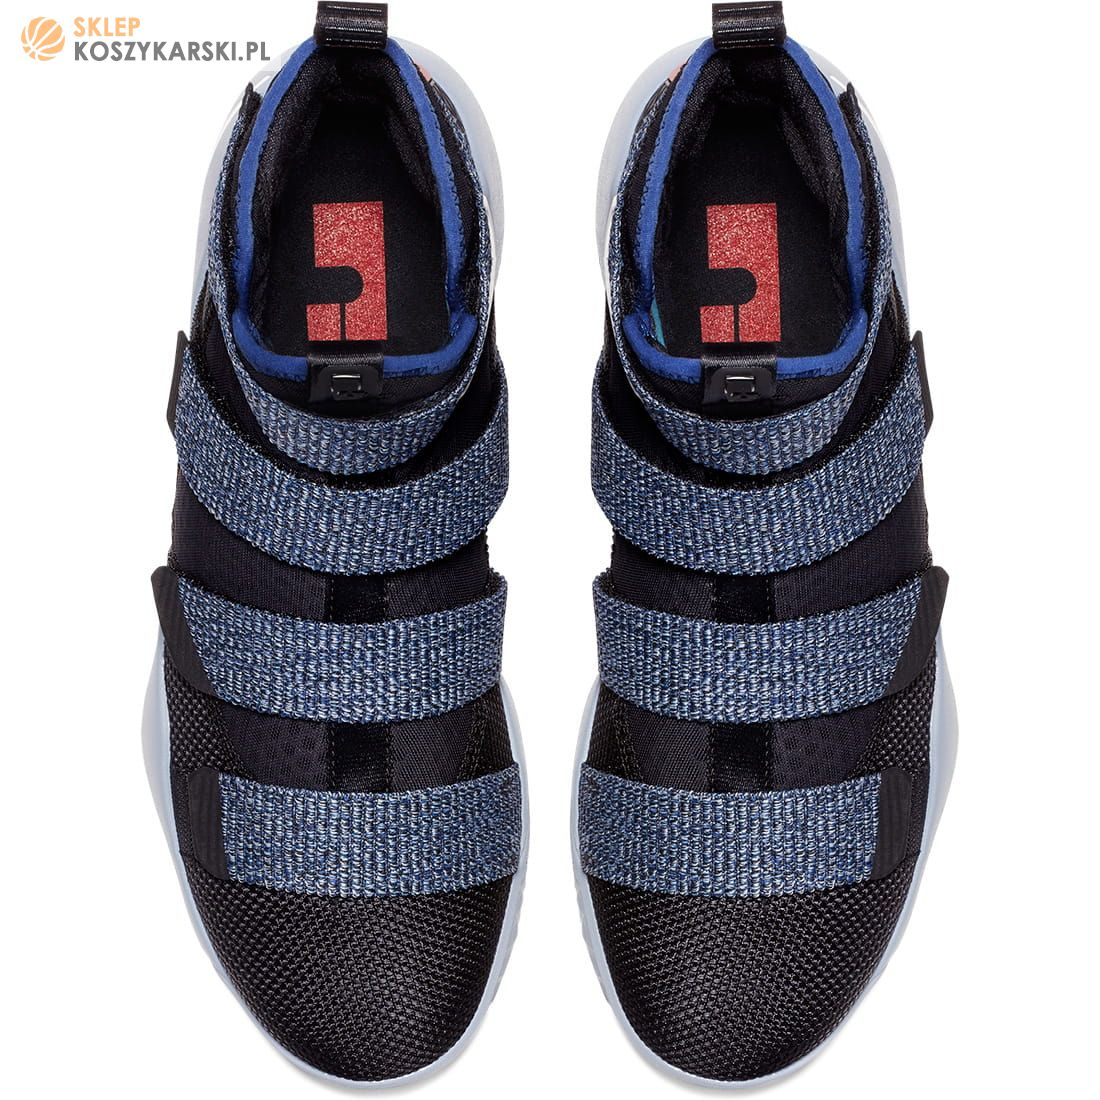 Buty Nike LeBron Soldier XI Royal (897644 005)